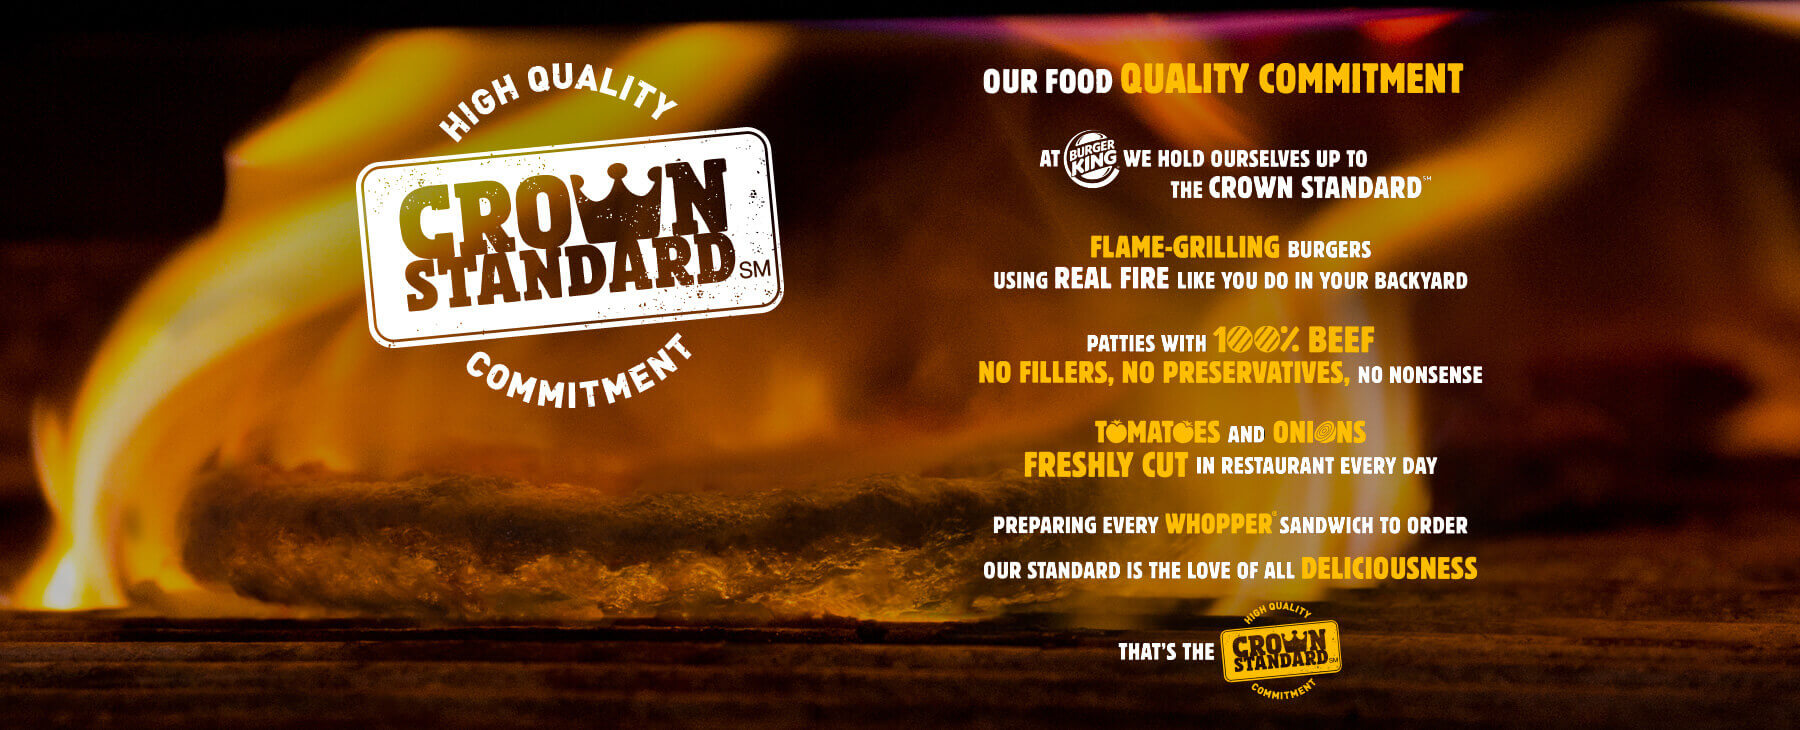 OUR FOOD QUALITY COMMITMENT. At BURGERKING we hold ourselves up to the crown standard. Flame-Grilling Burgers, using REAL FIRE like you do in your backyard. patties with 100% beef no fillers, no preservatives, no nonsense. tomatoes and onions freshly cut in restaurant every day. preparing every whopper sandwich to order our standard is the love of all deliciousness. That is the High quality Crown Standard Commitment.